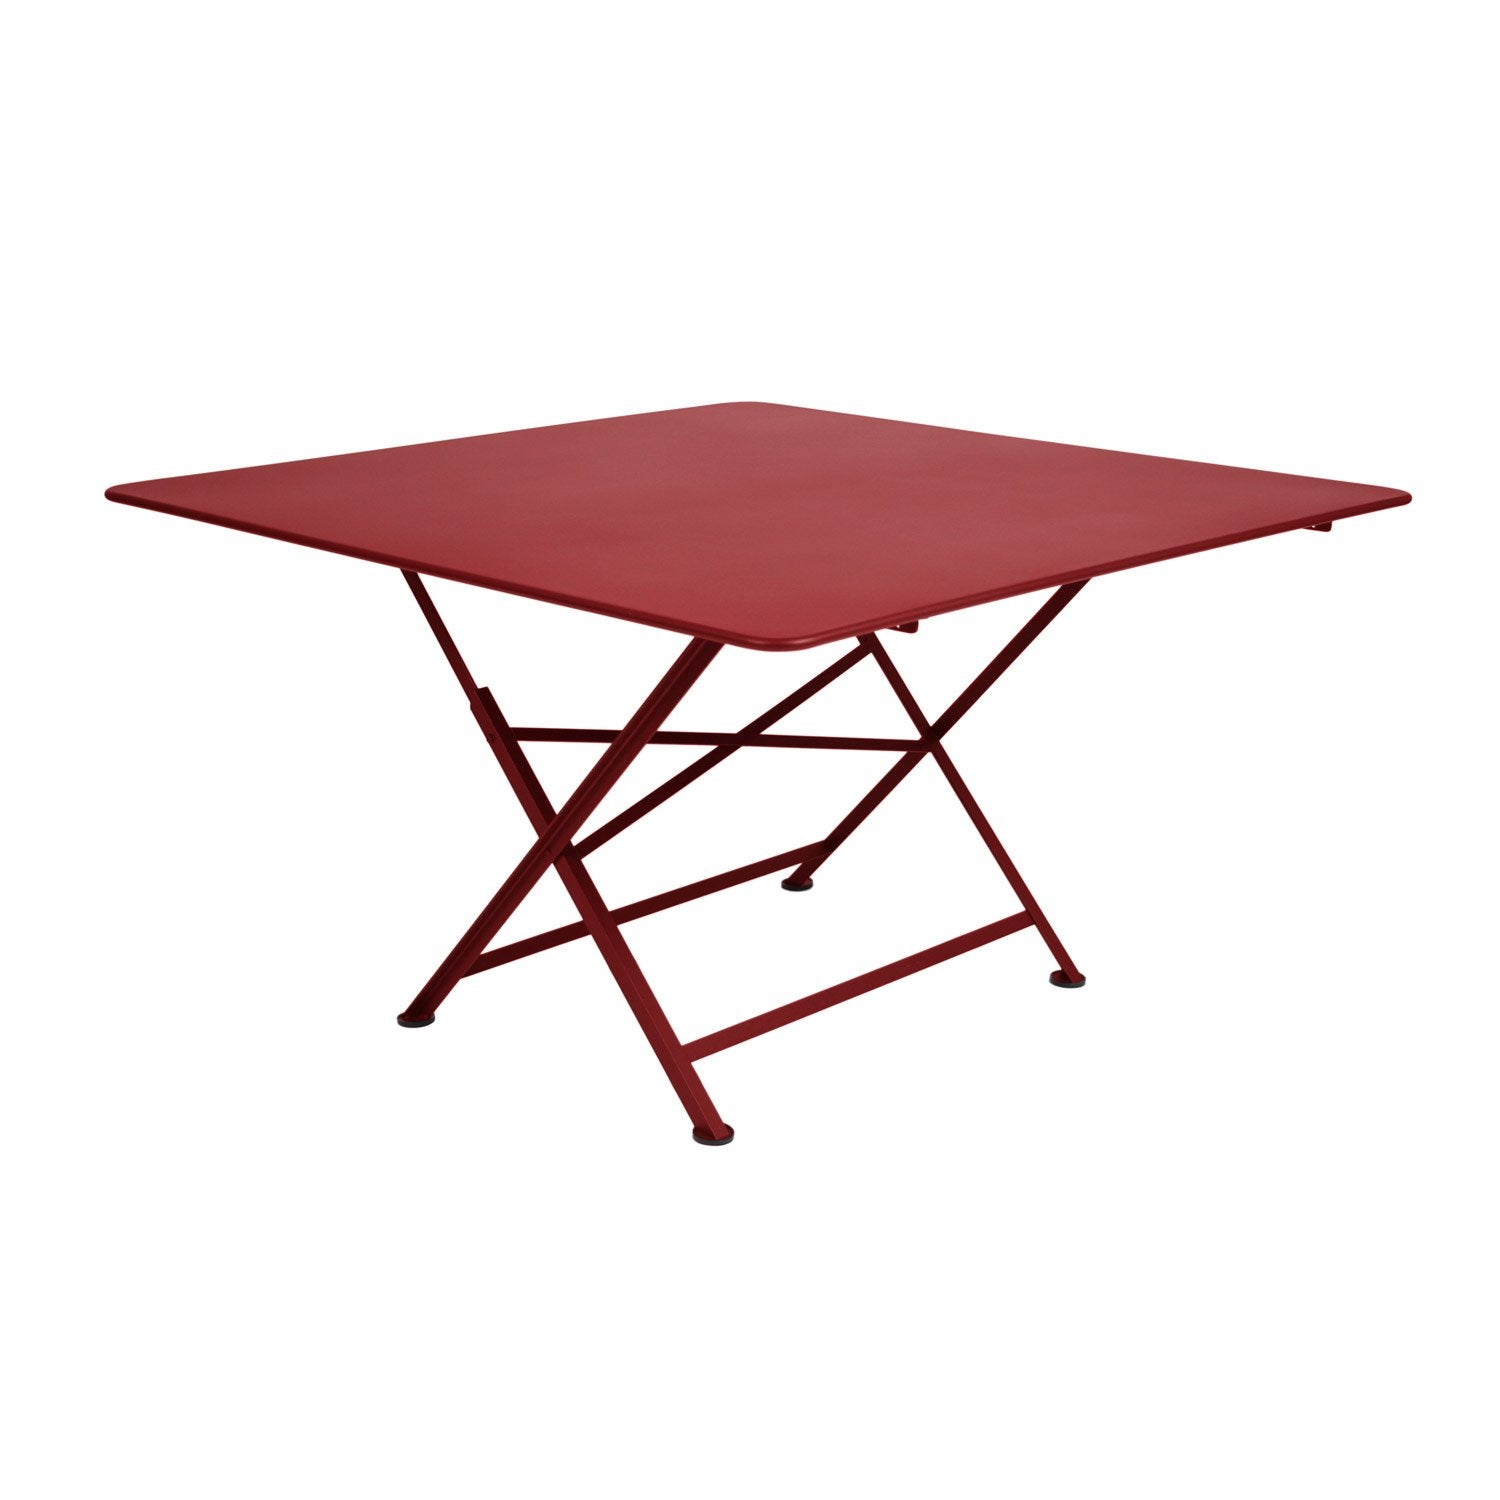 Table de jardin fermob cargo carr e piment 8 personnes for Fermob table de jardin